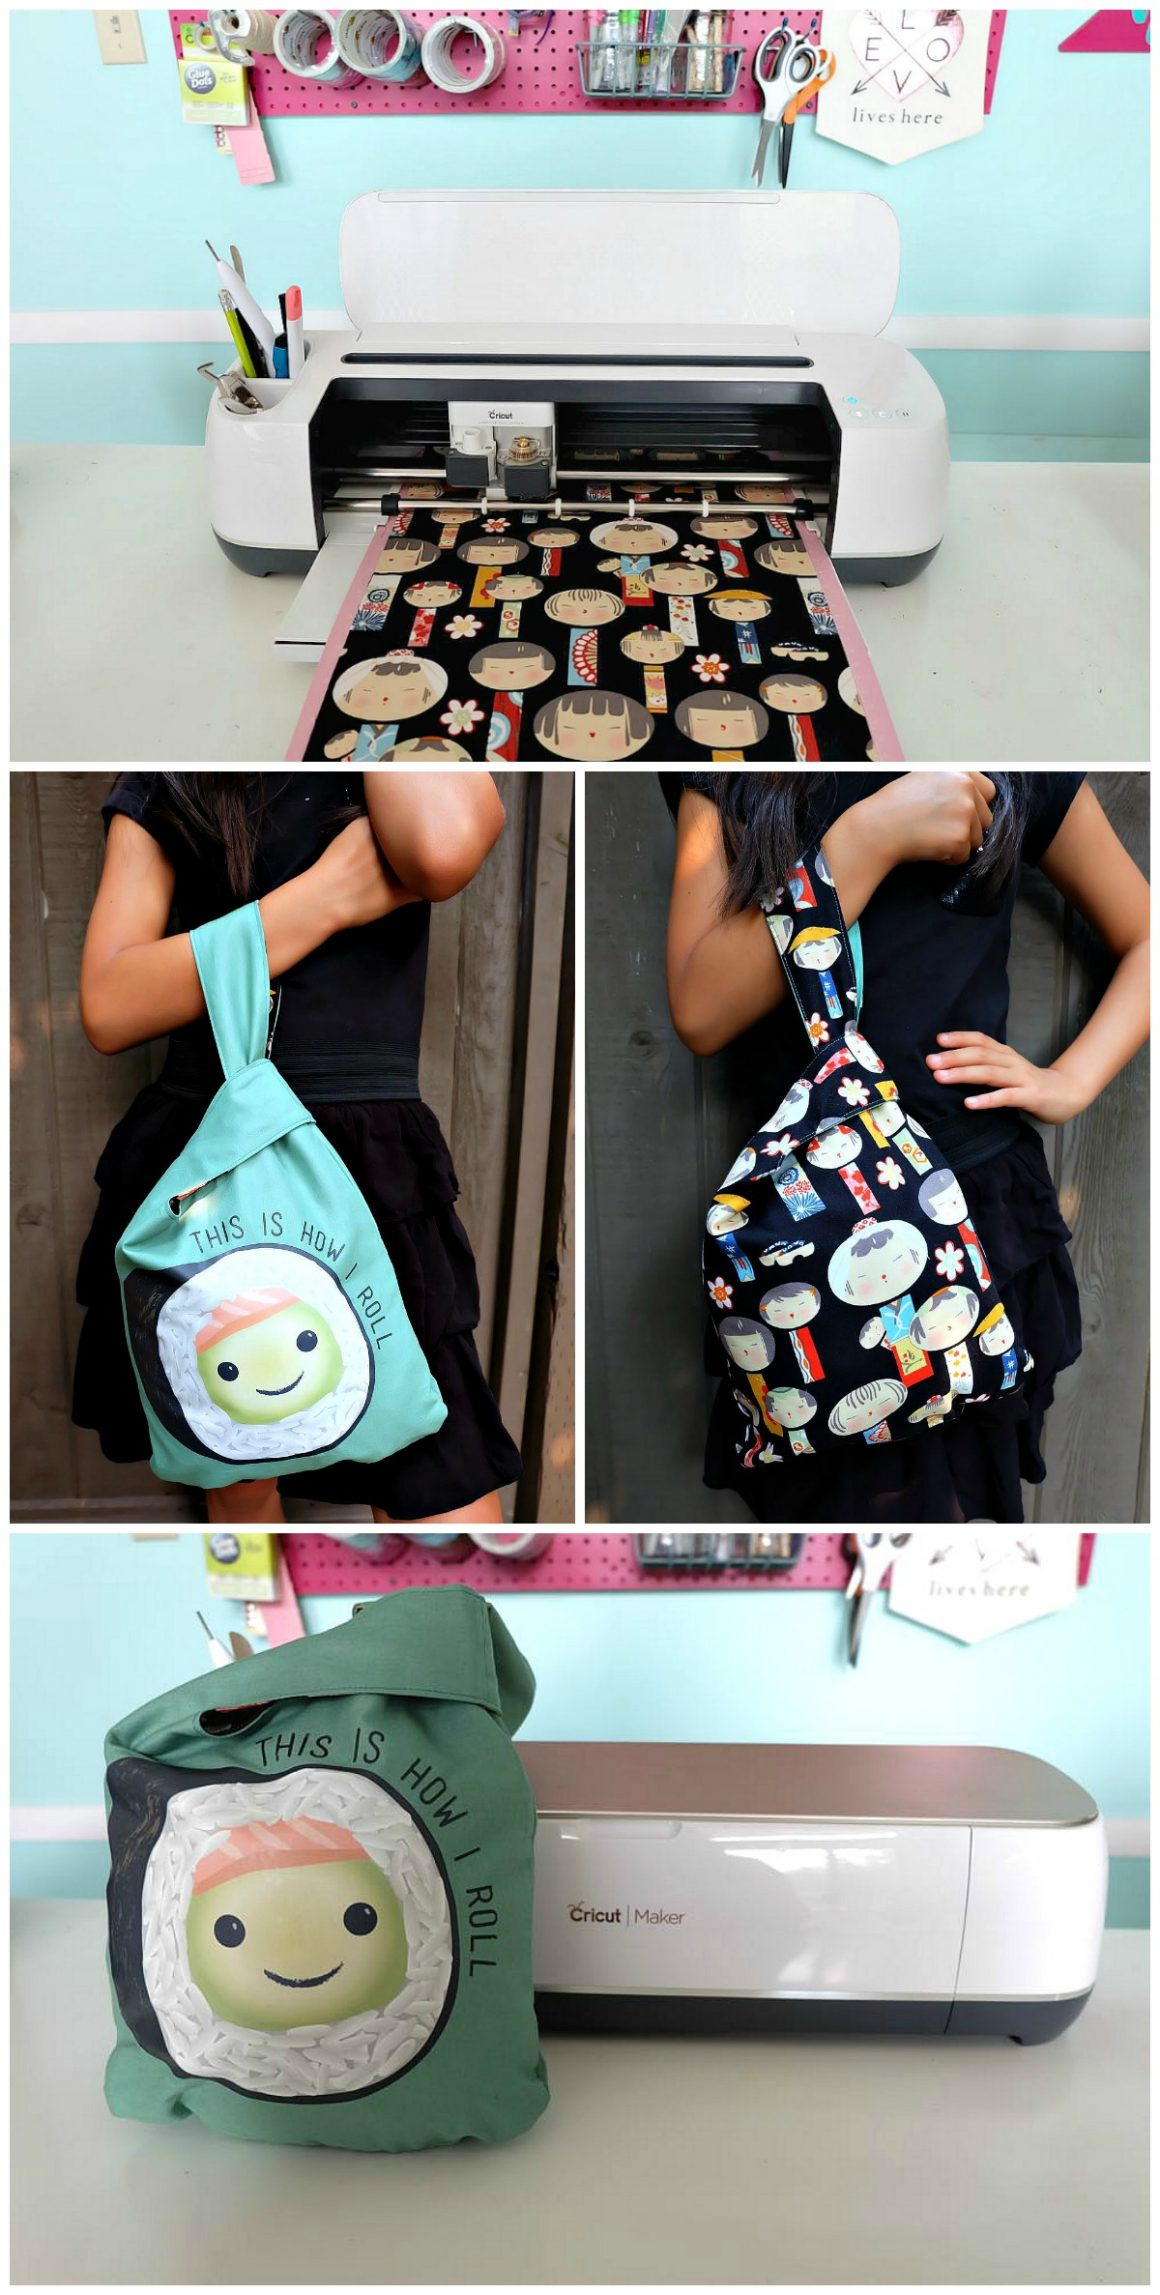 Create an adorable Reversible DIY Japanese Knot Bag with your Cricut Maker using this free cut file, pattern and step by step sewing tutorial from Hello Creative Family. This 30 minute project makes a great handmade gift. Customize the size to make handmade book bags, lunch totes, purses, snack bags and more! A fun fashion accessory for adults or kids! #Sponsored #Cricut #CricutMaker #Sewing #HandmadeGift